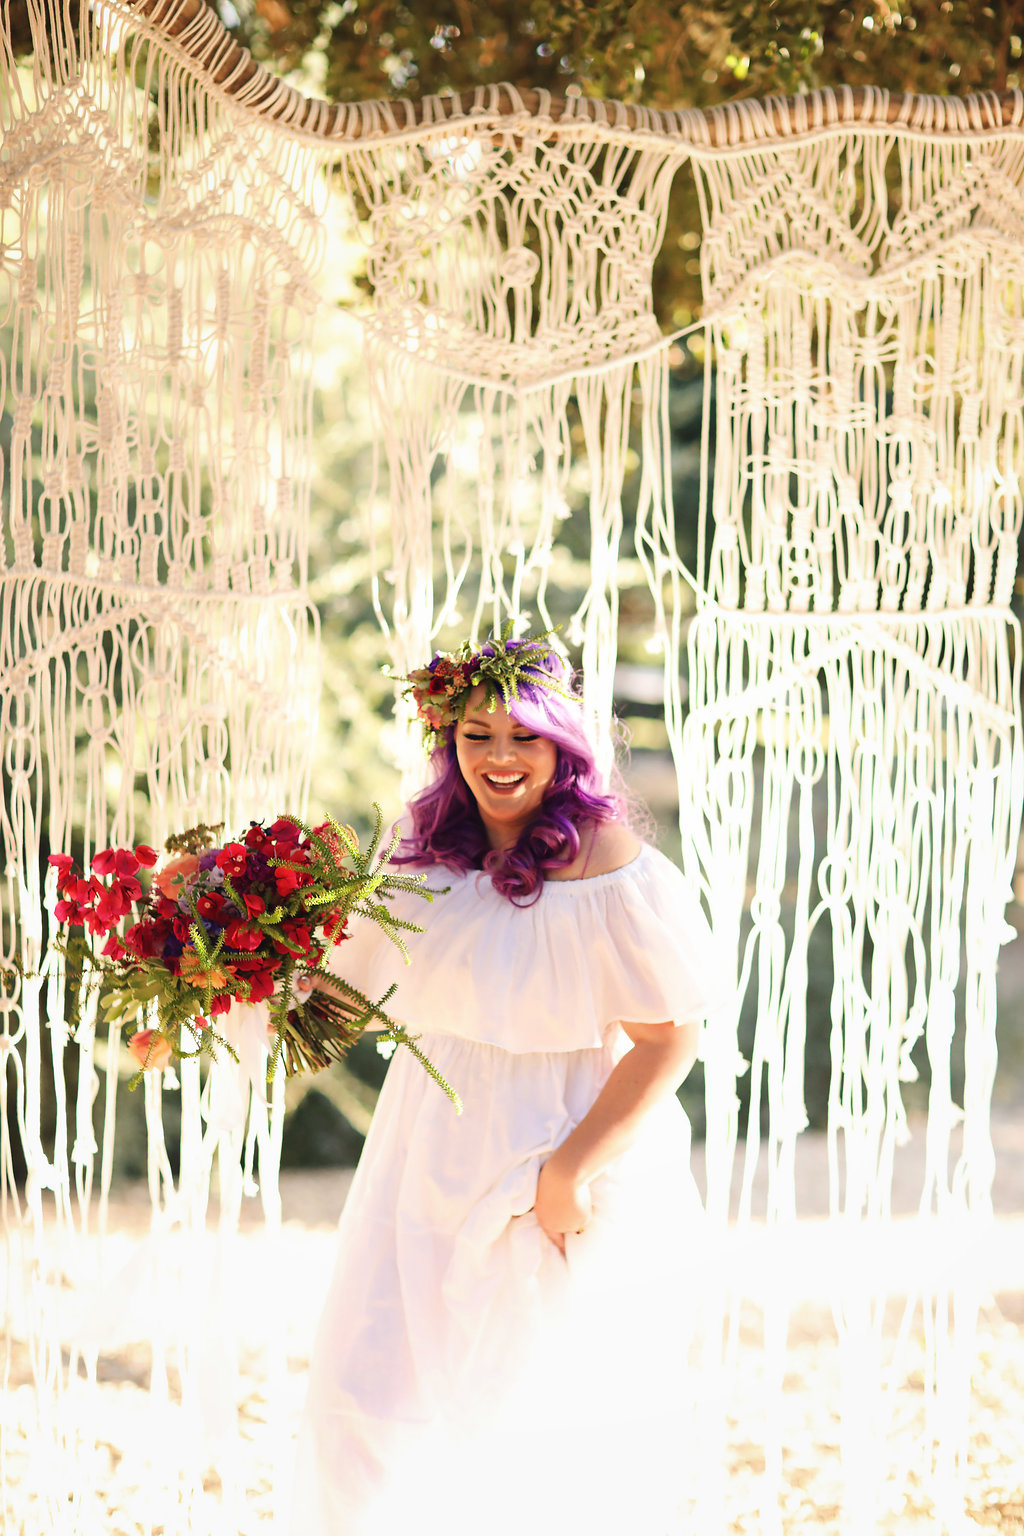 Laughing ultra violet hair bride in front of hand created macrame backdrop.